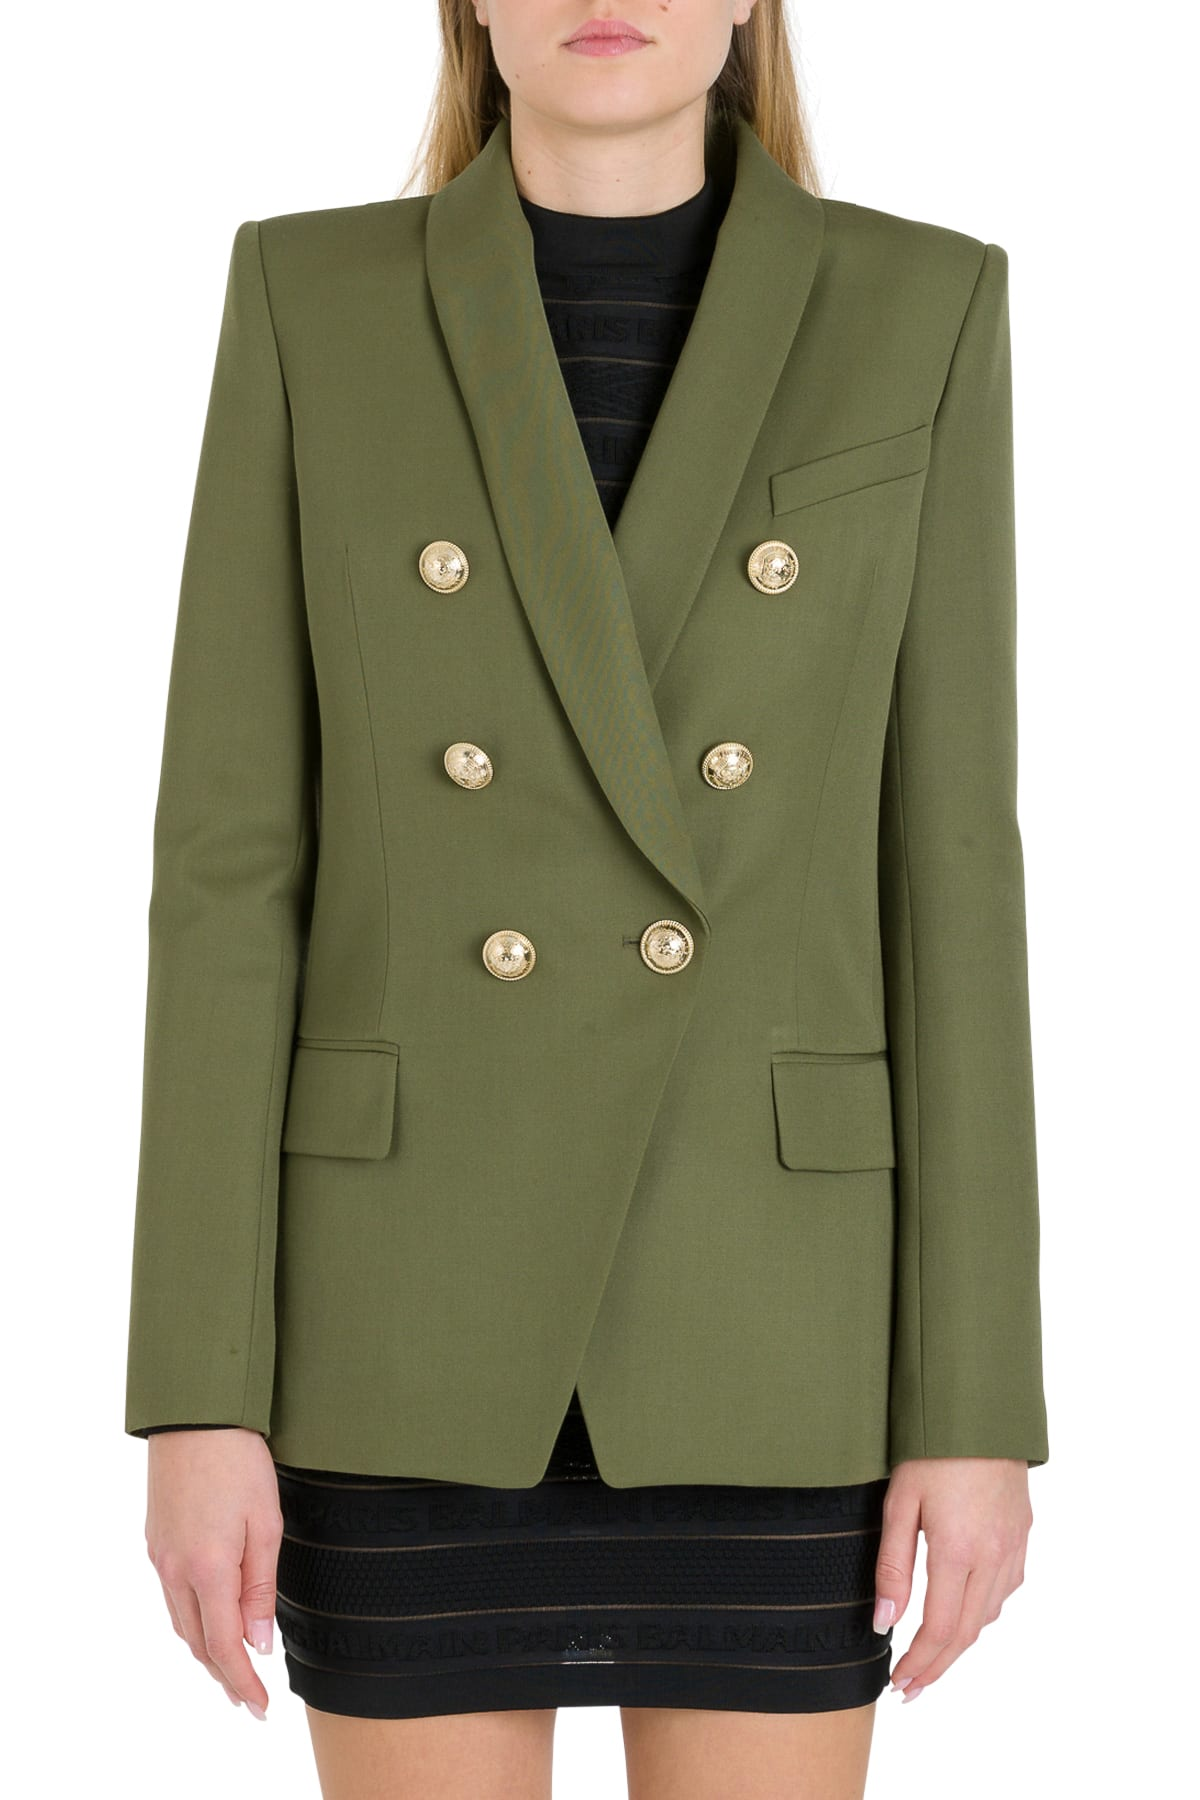 Balmain Six Buttons Double-breasted Blazer